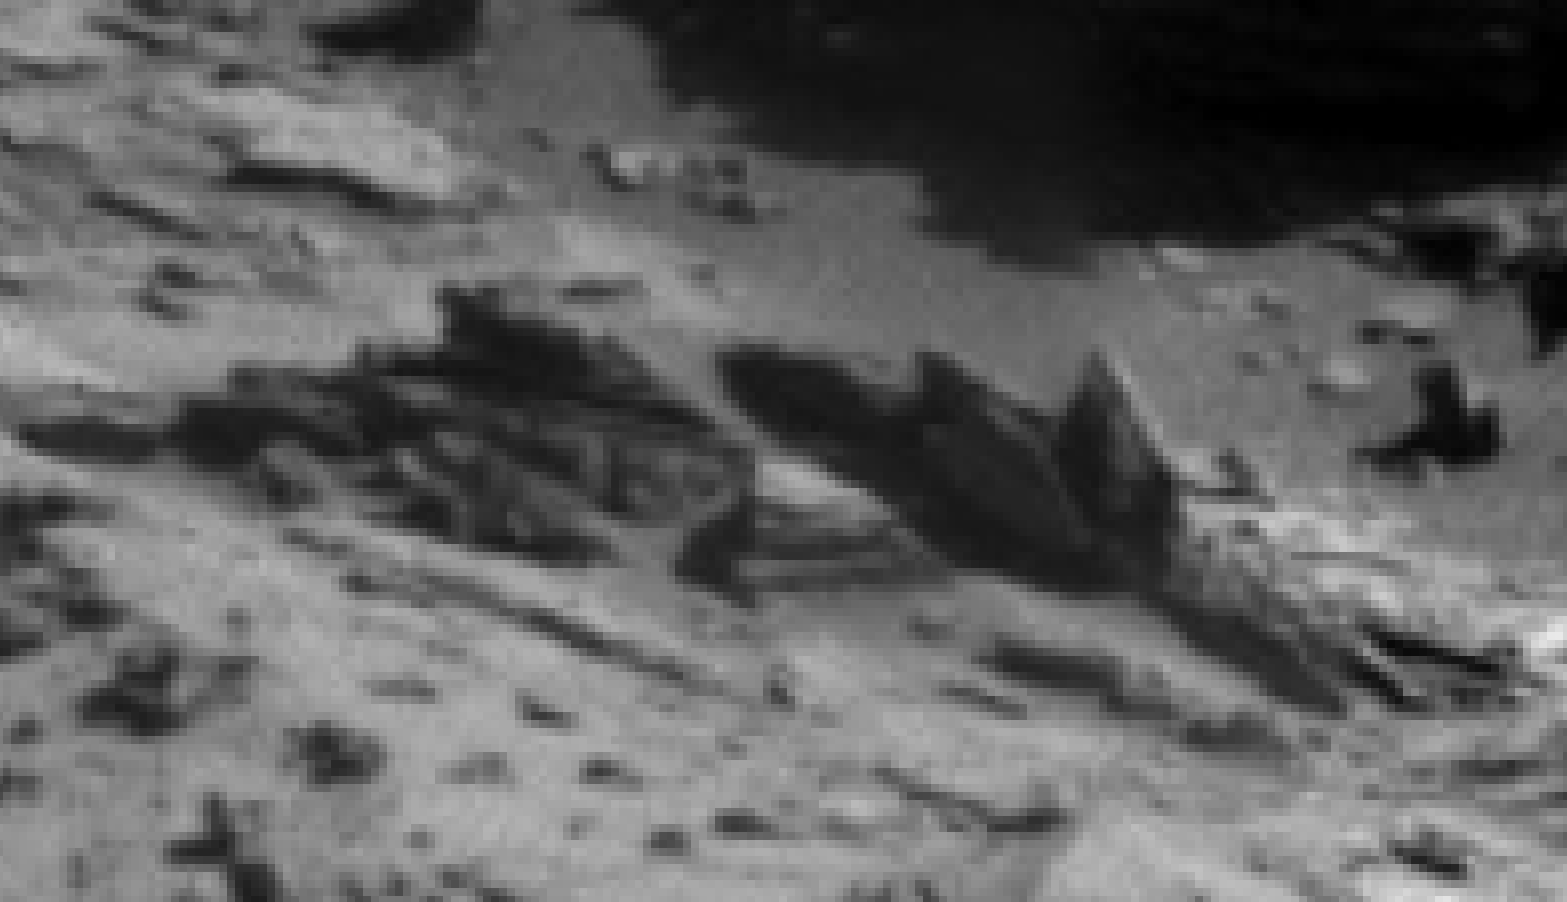 mars sol 1301 anomaly-artifacts 3 was life on mars